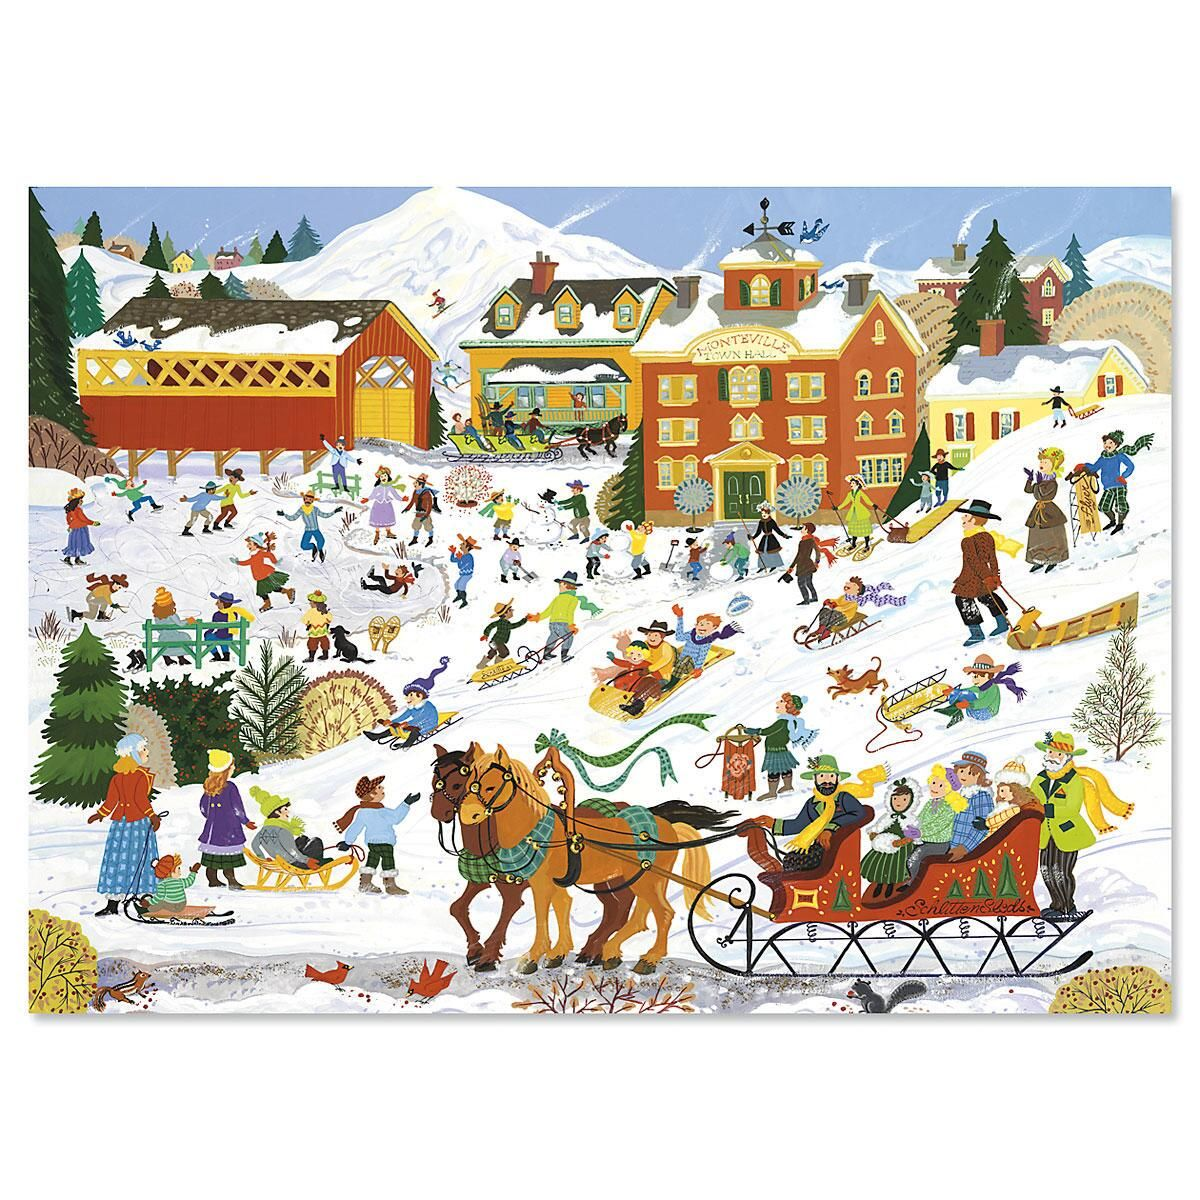 Winter Sports Nonpersonalized Christmas Cards - Set of 18